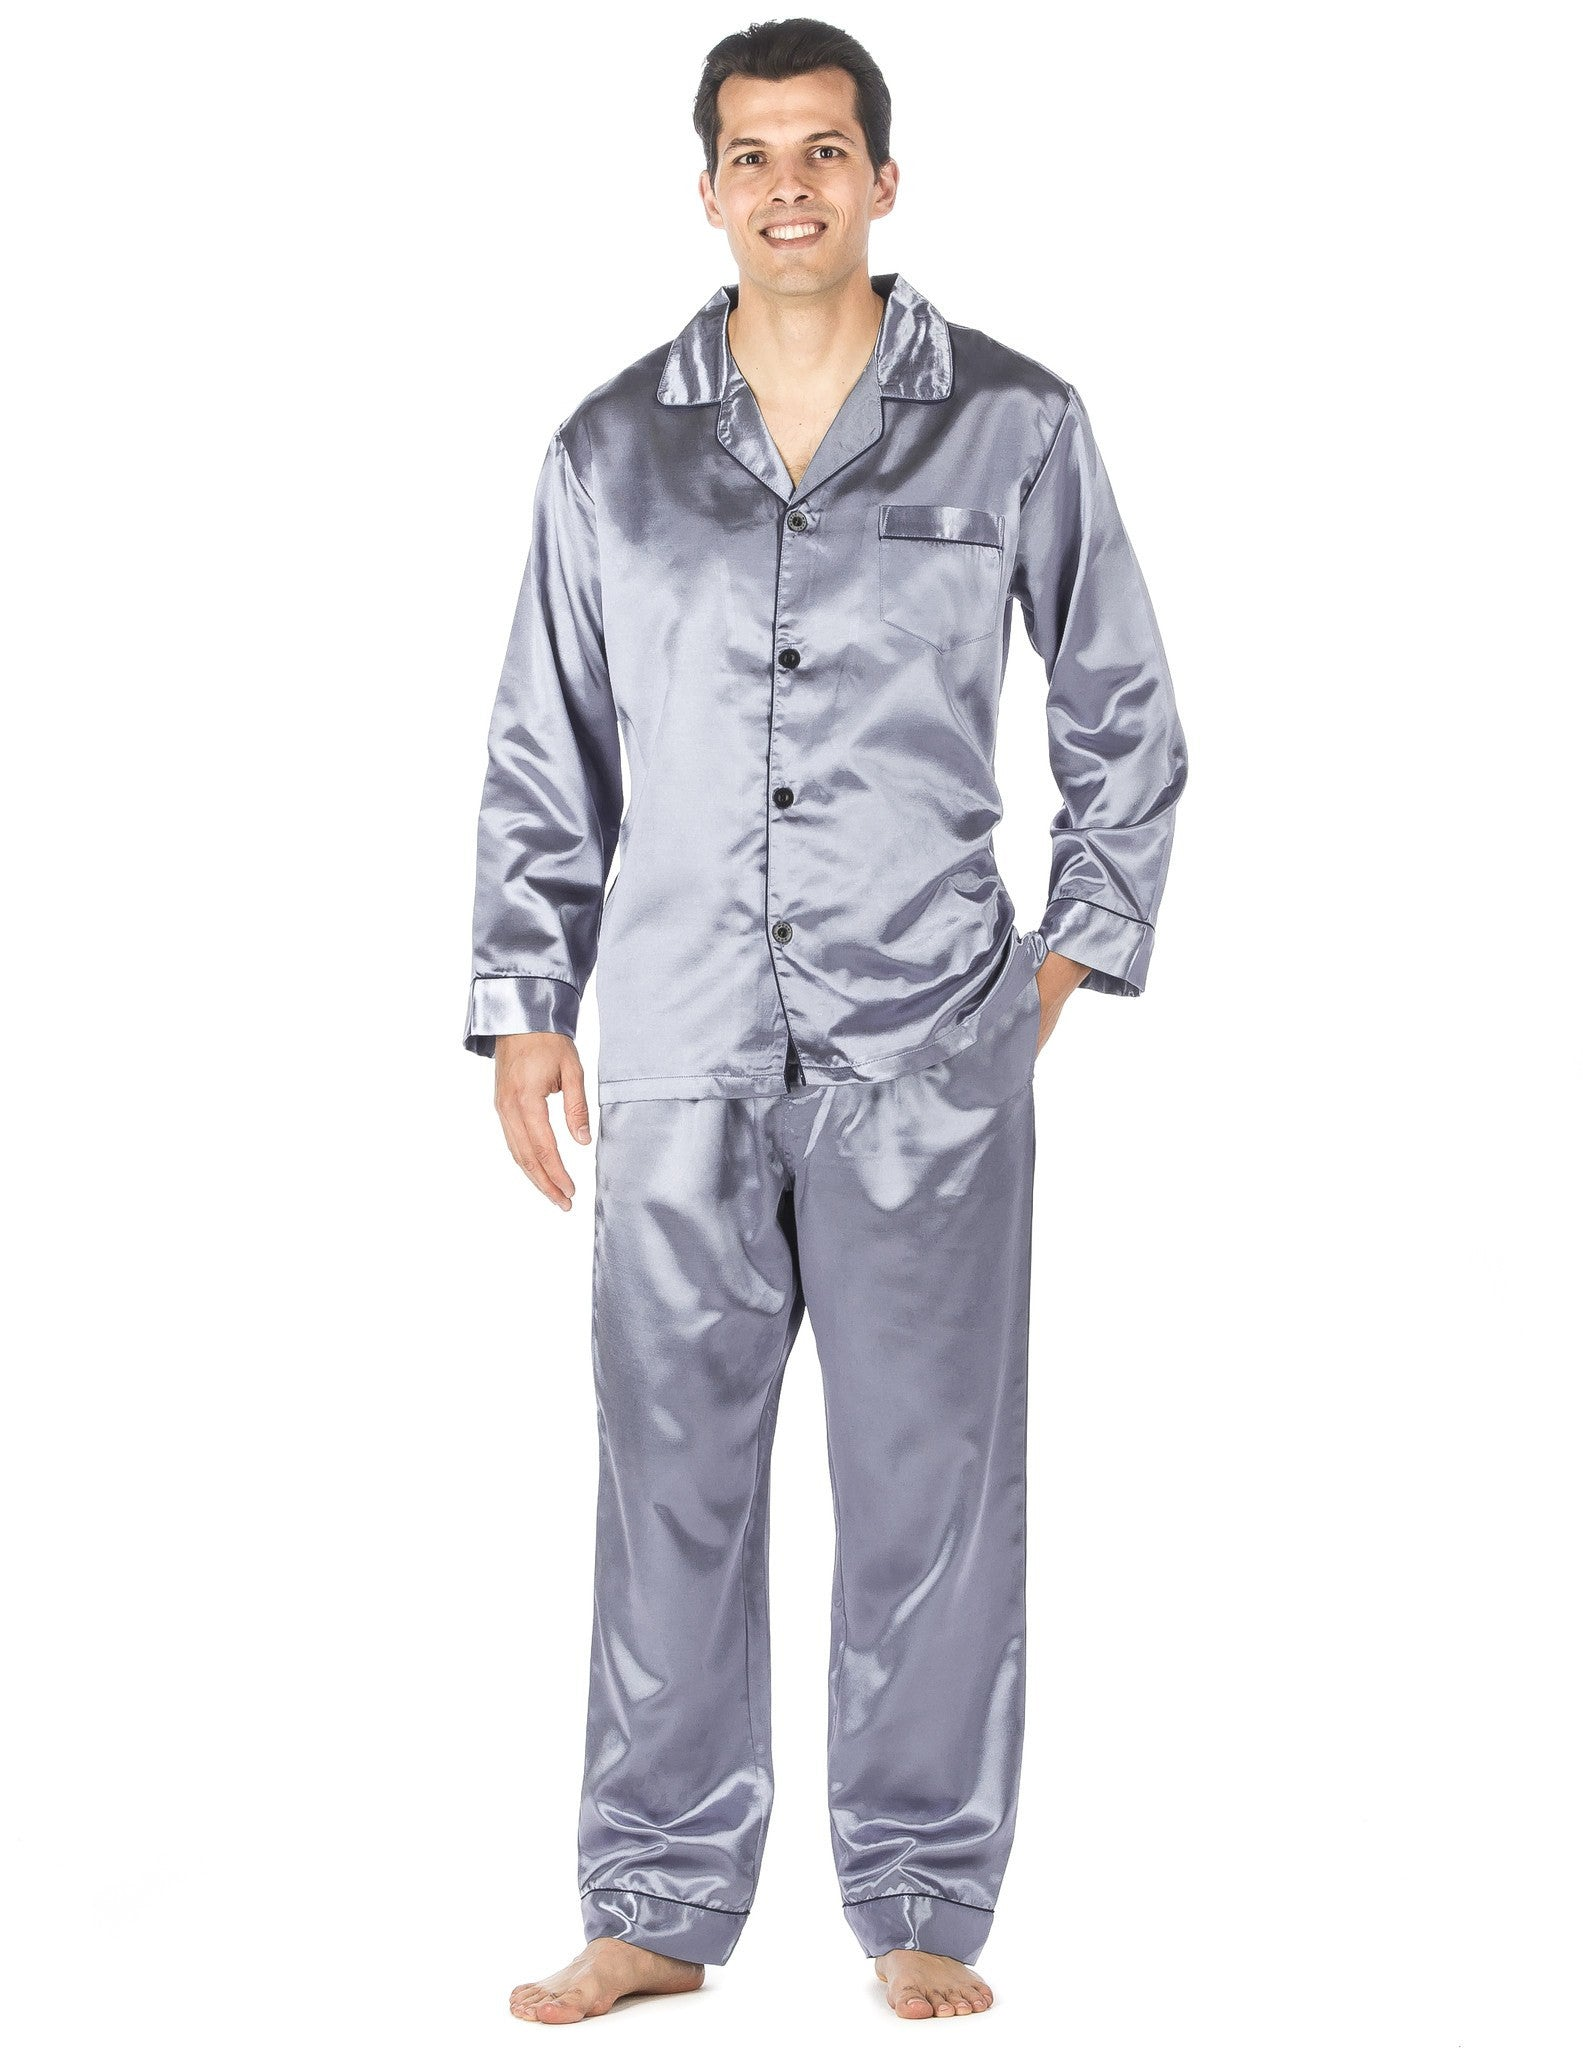 Men's pajama sets come in several fabrics and styles to fit your lifestyle. From satin to flannel, these men's pajamas give you several options to consider. Whether you want extra warmth from fleece or just something comfy, such as jersey pants, to lounge in, you'll discover a favorite pair.